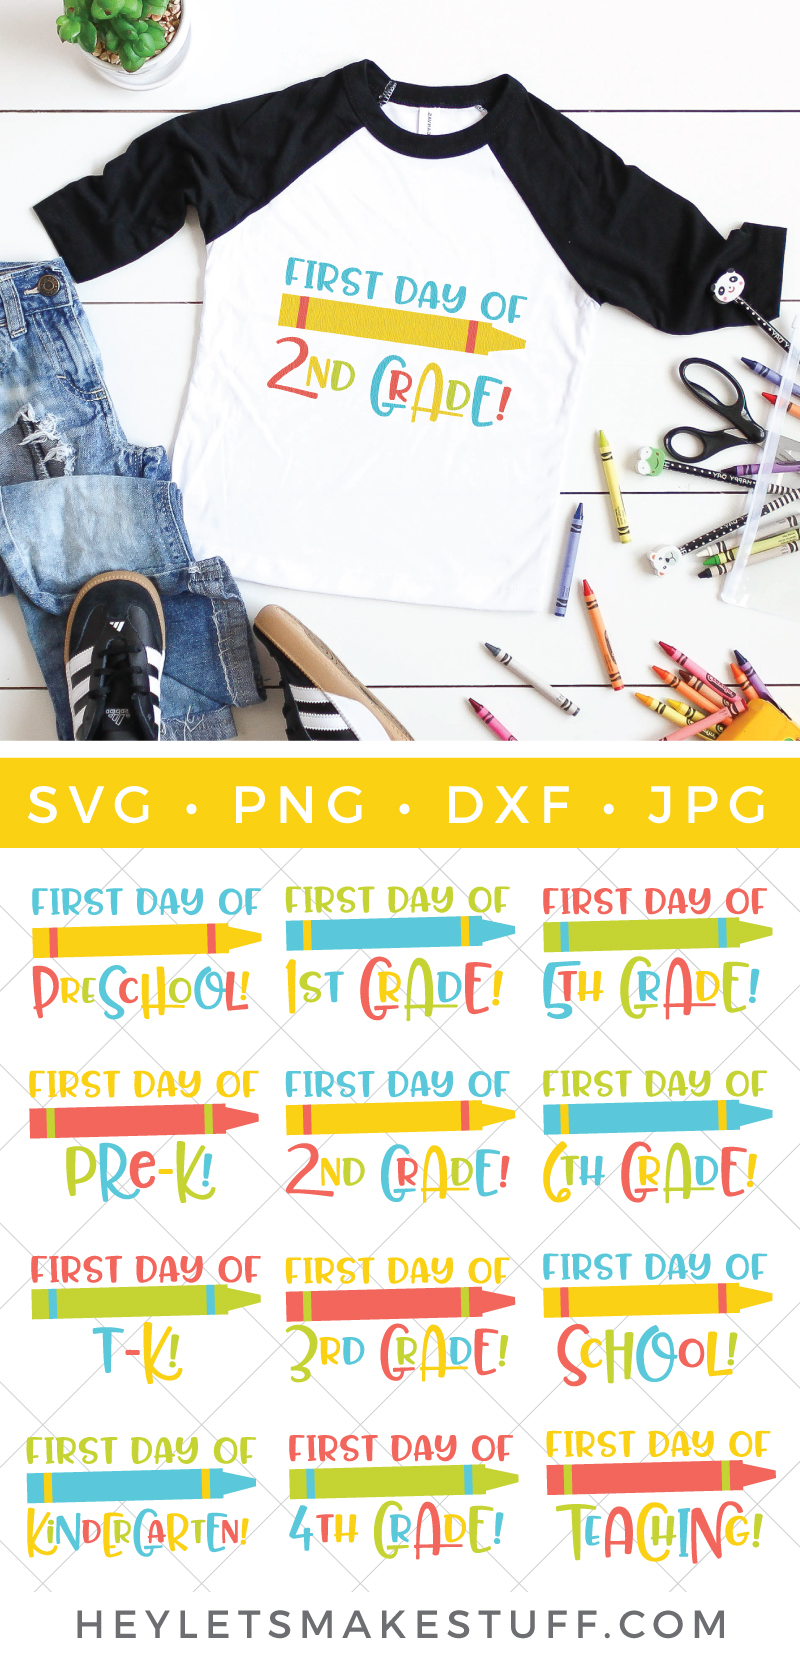 Before you know it school will be back in session! Get those little students of yours ready for all those cute and memorable first day photo ops with this fun First Day of School SVG Bundle. via @heyletsmakestuf